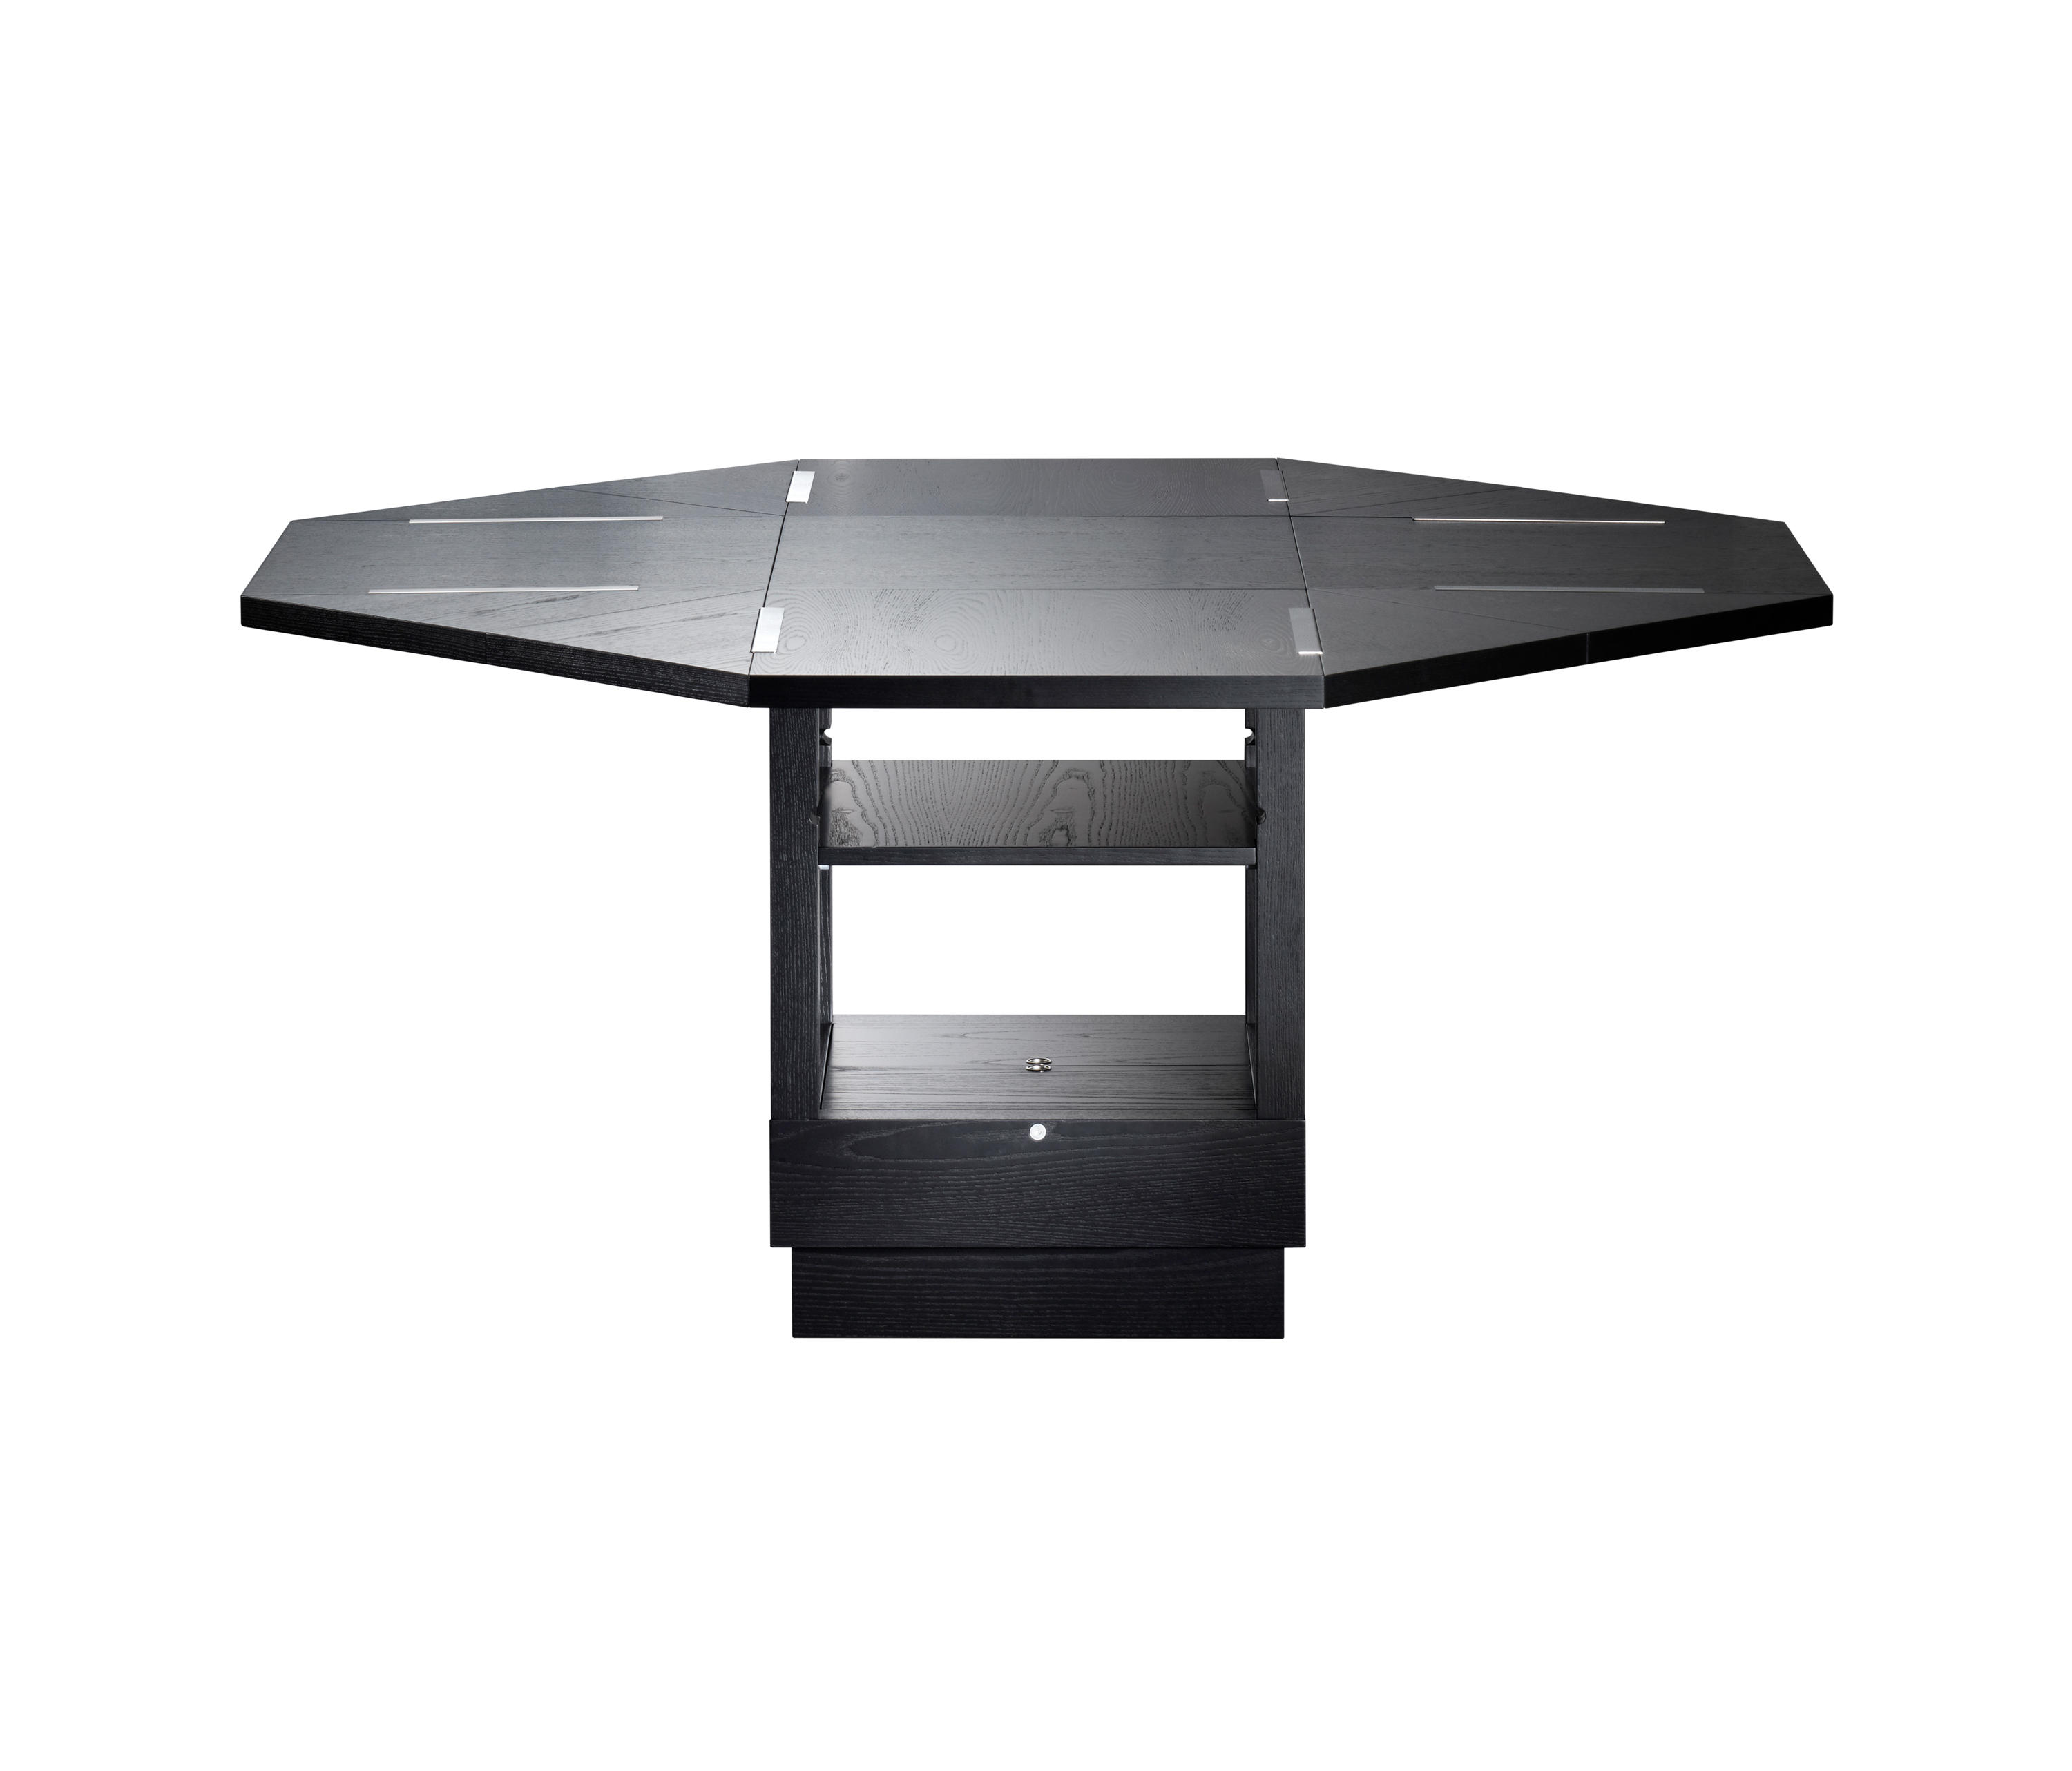 M10 BAUHAUS FOLDING TABLE Dining tables from TECTA